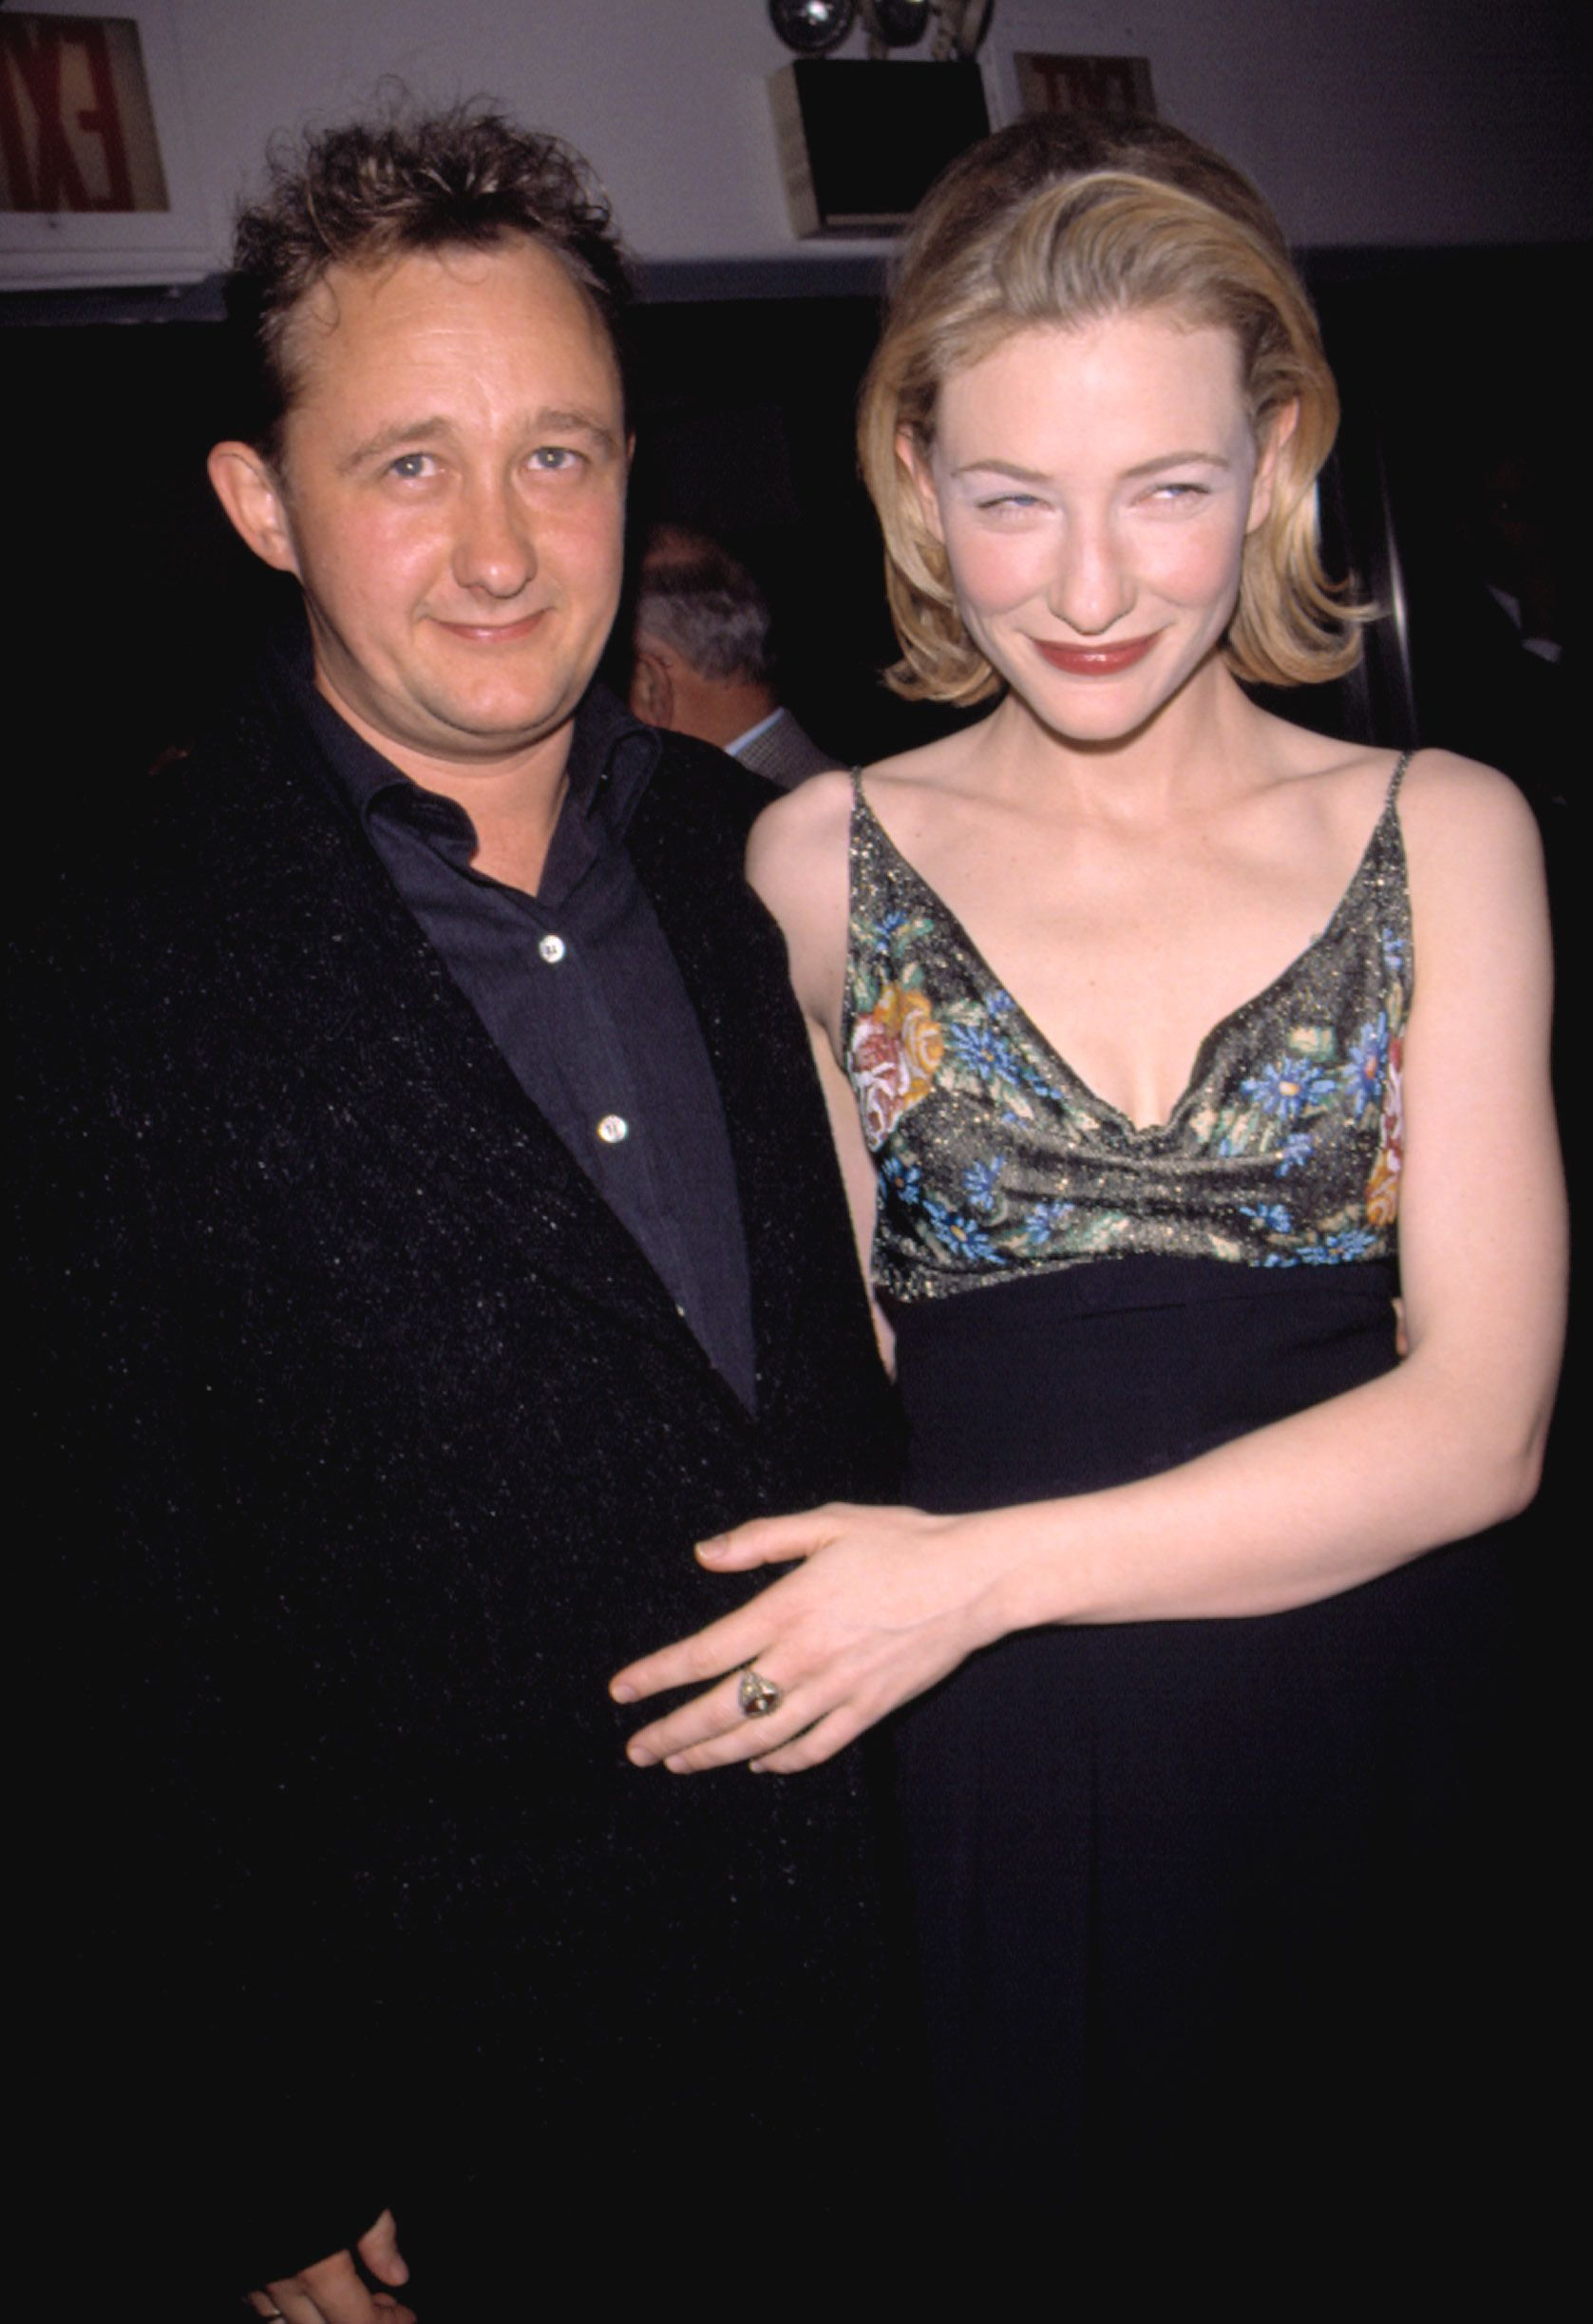 """Cate Blanchett with husband Andrew Upton at the premiere of """"Elizabeth"""" in 1998 